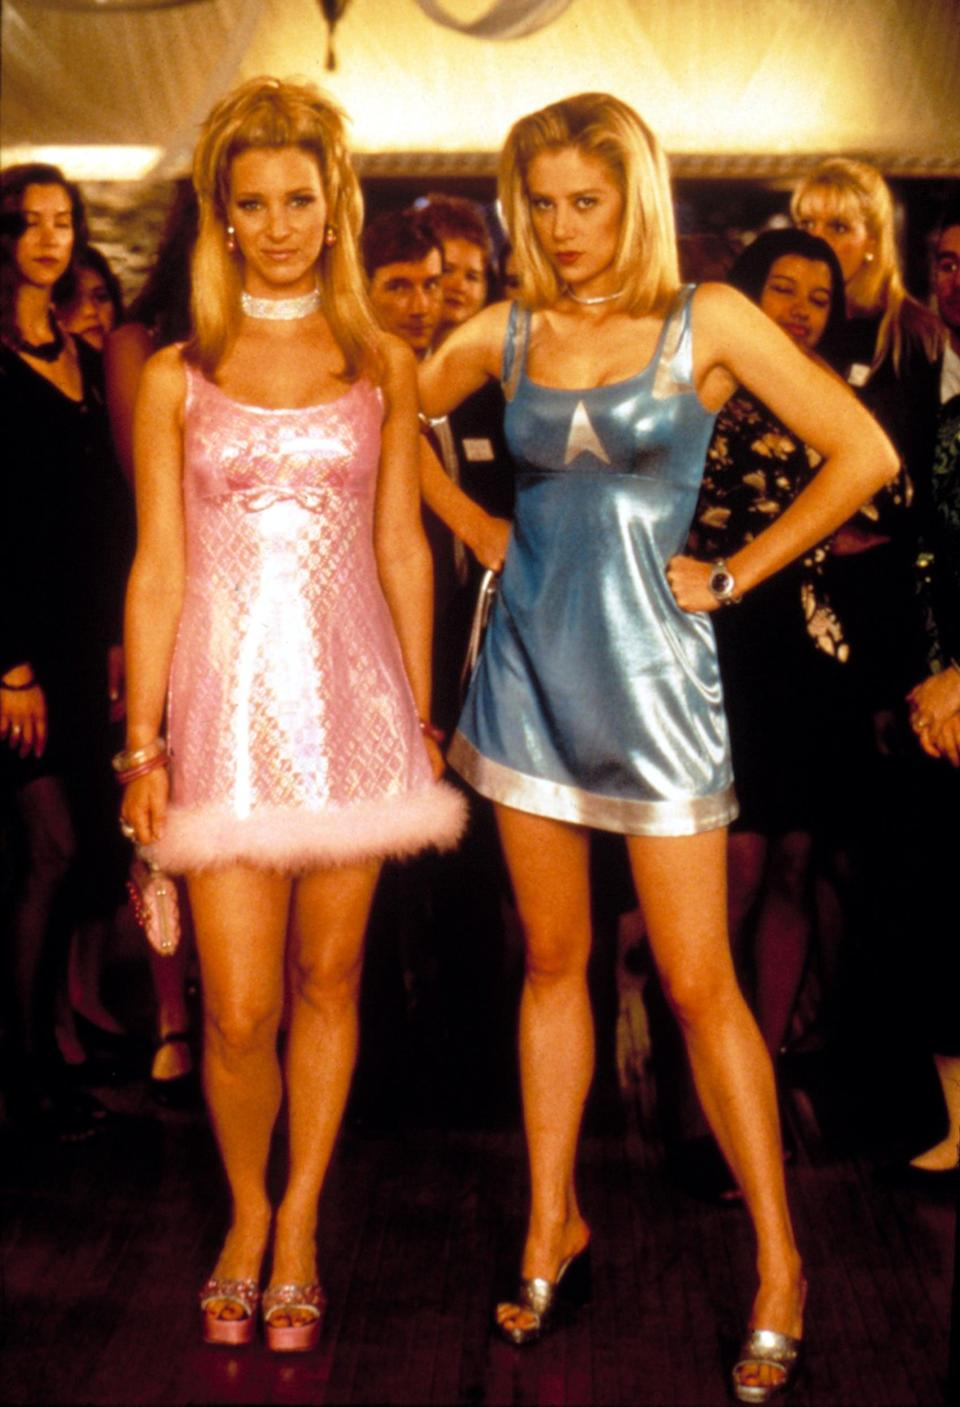 """<p>To dress as our favorite '90s besties from <a href=""""https://www.popsugar.com/Romy-Michele-High-School-Reunion-GIFs-28579360"""" class=""""link rapid-noclick-resp"""" rel=""""nofollow noopener"""" target=""""_blank"""" data-ylk=""""slk:Romy and Michele's High School Reunion"""">Romy and Michele's High School Reunion</a>, you need shiny, short dresses; chokers; platform shoes; and sweet dance moves.</p>"""